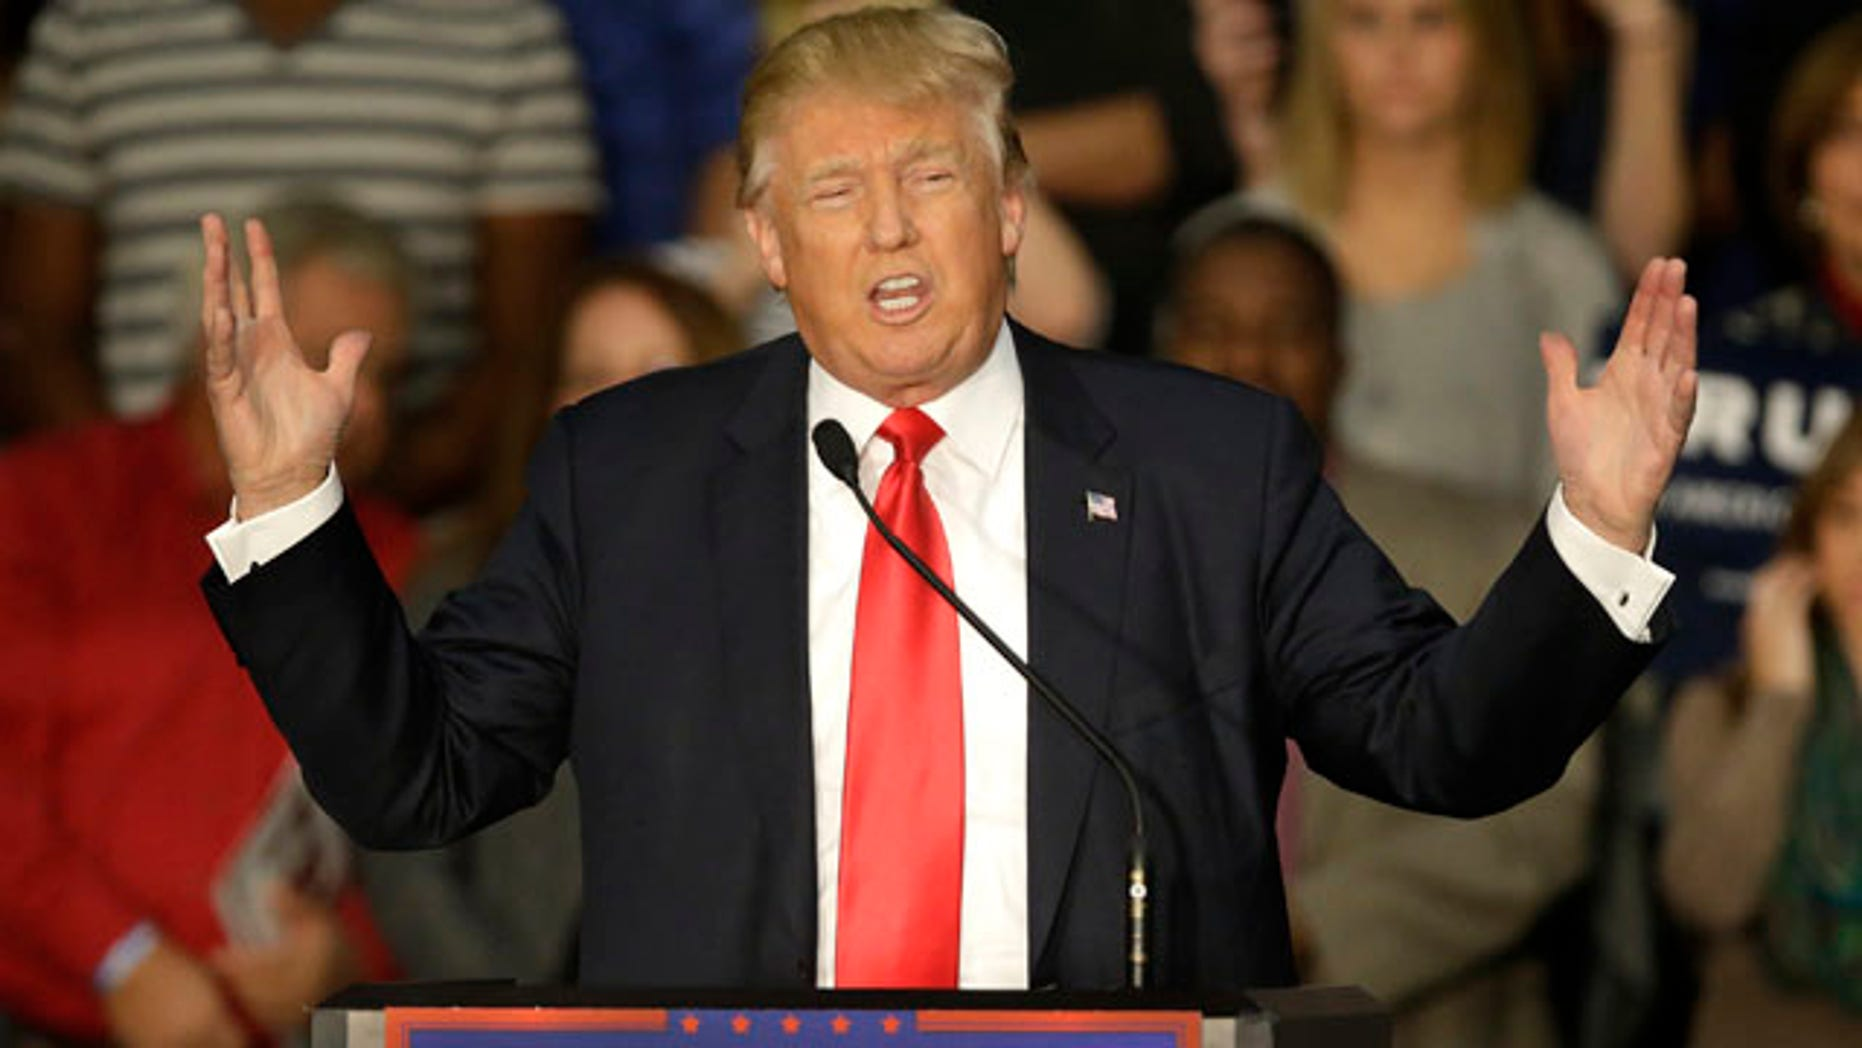 Nov. 9, 2015: Republican presidential candidate Donald Trump speaks to a crowd of supporters during a campaign rally in Springfield, Ill. (AP Photo/Seth Perlman)